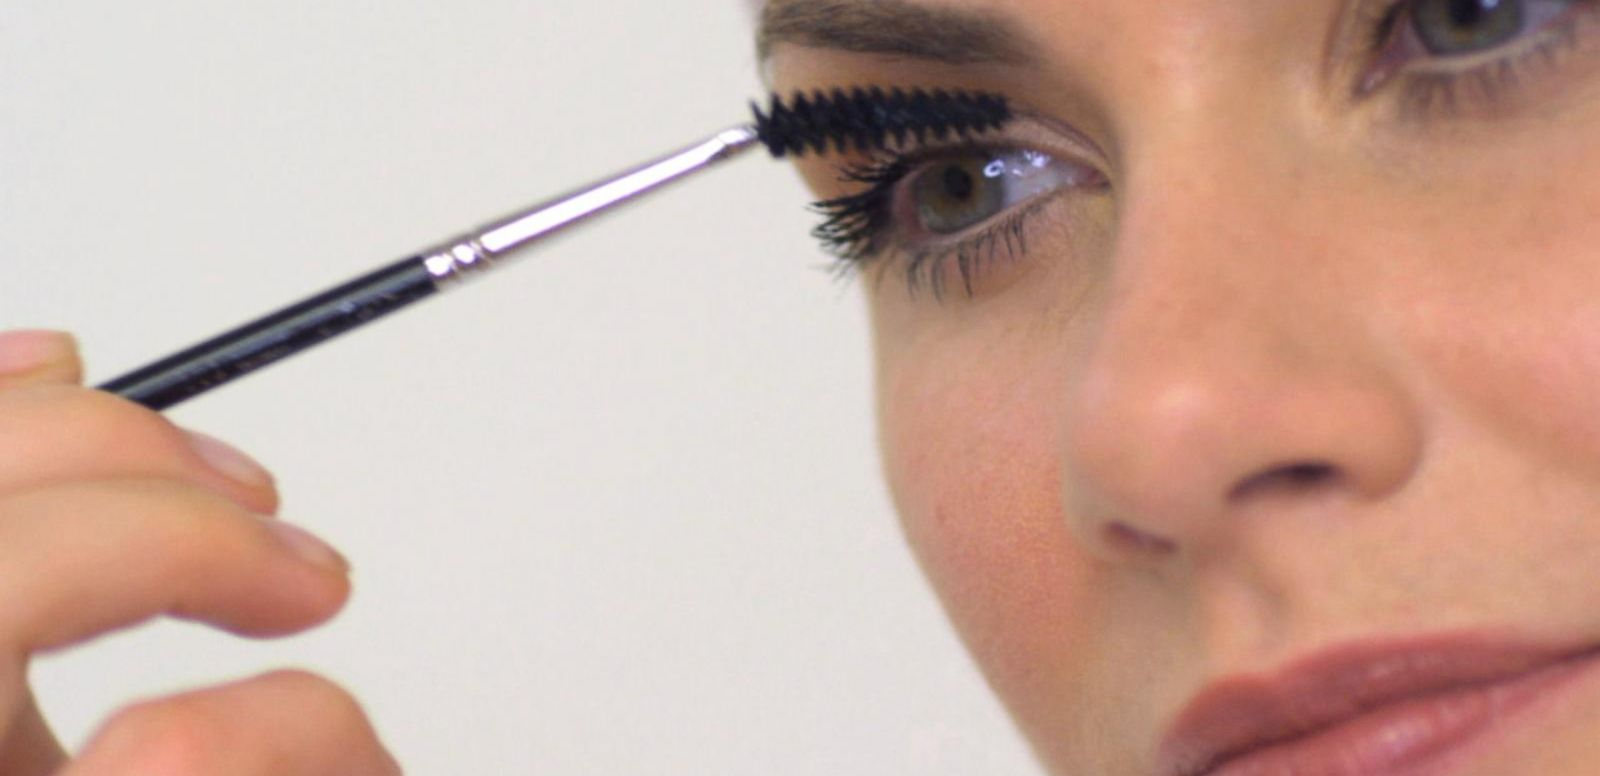 VIDEO: Turn Heads With More Mascara